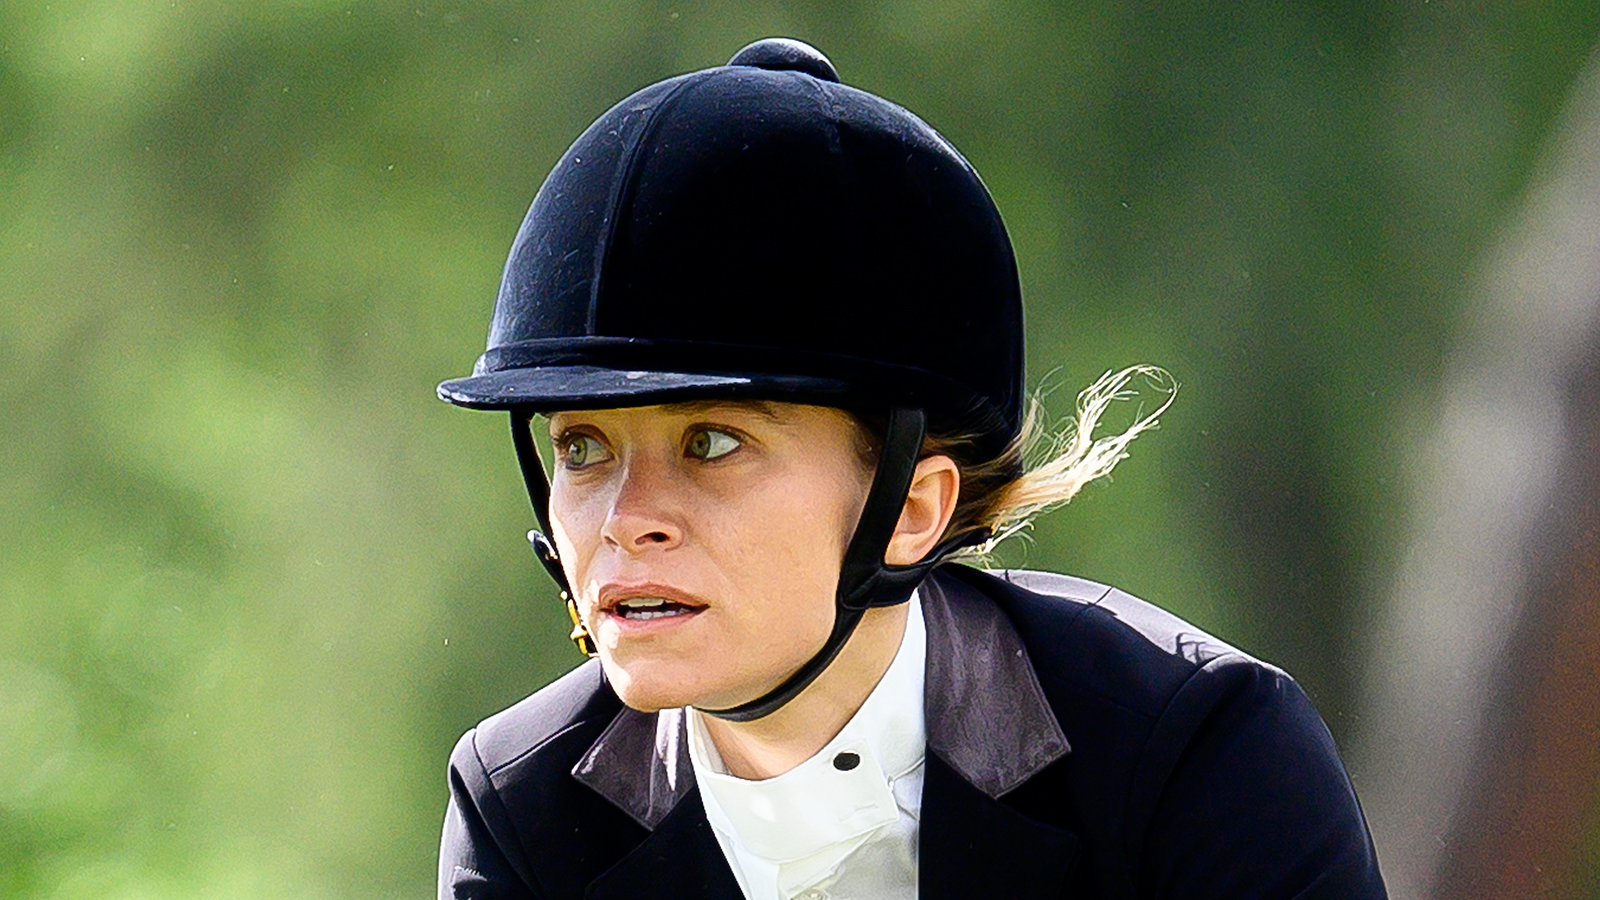 Mary-Kate Olsen Shows Off Her Impressive Skills During a Horseback Riding Competition